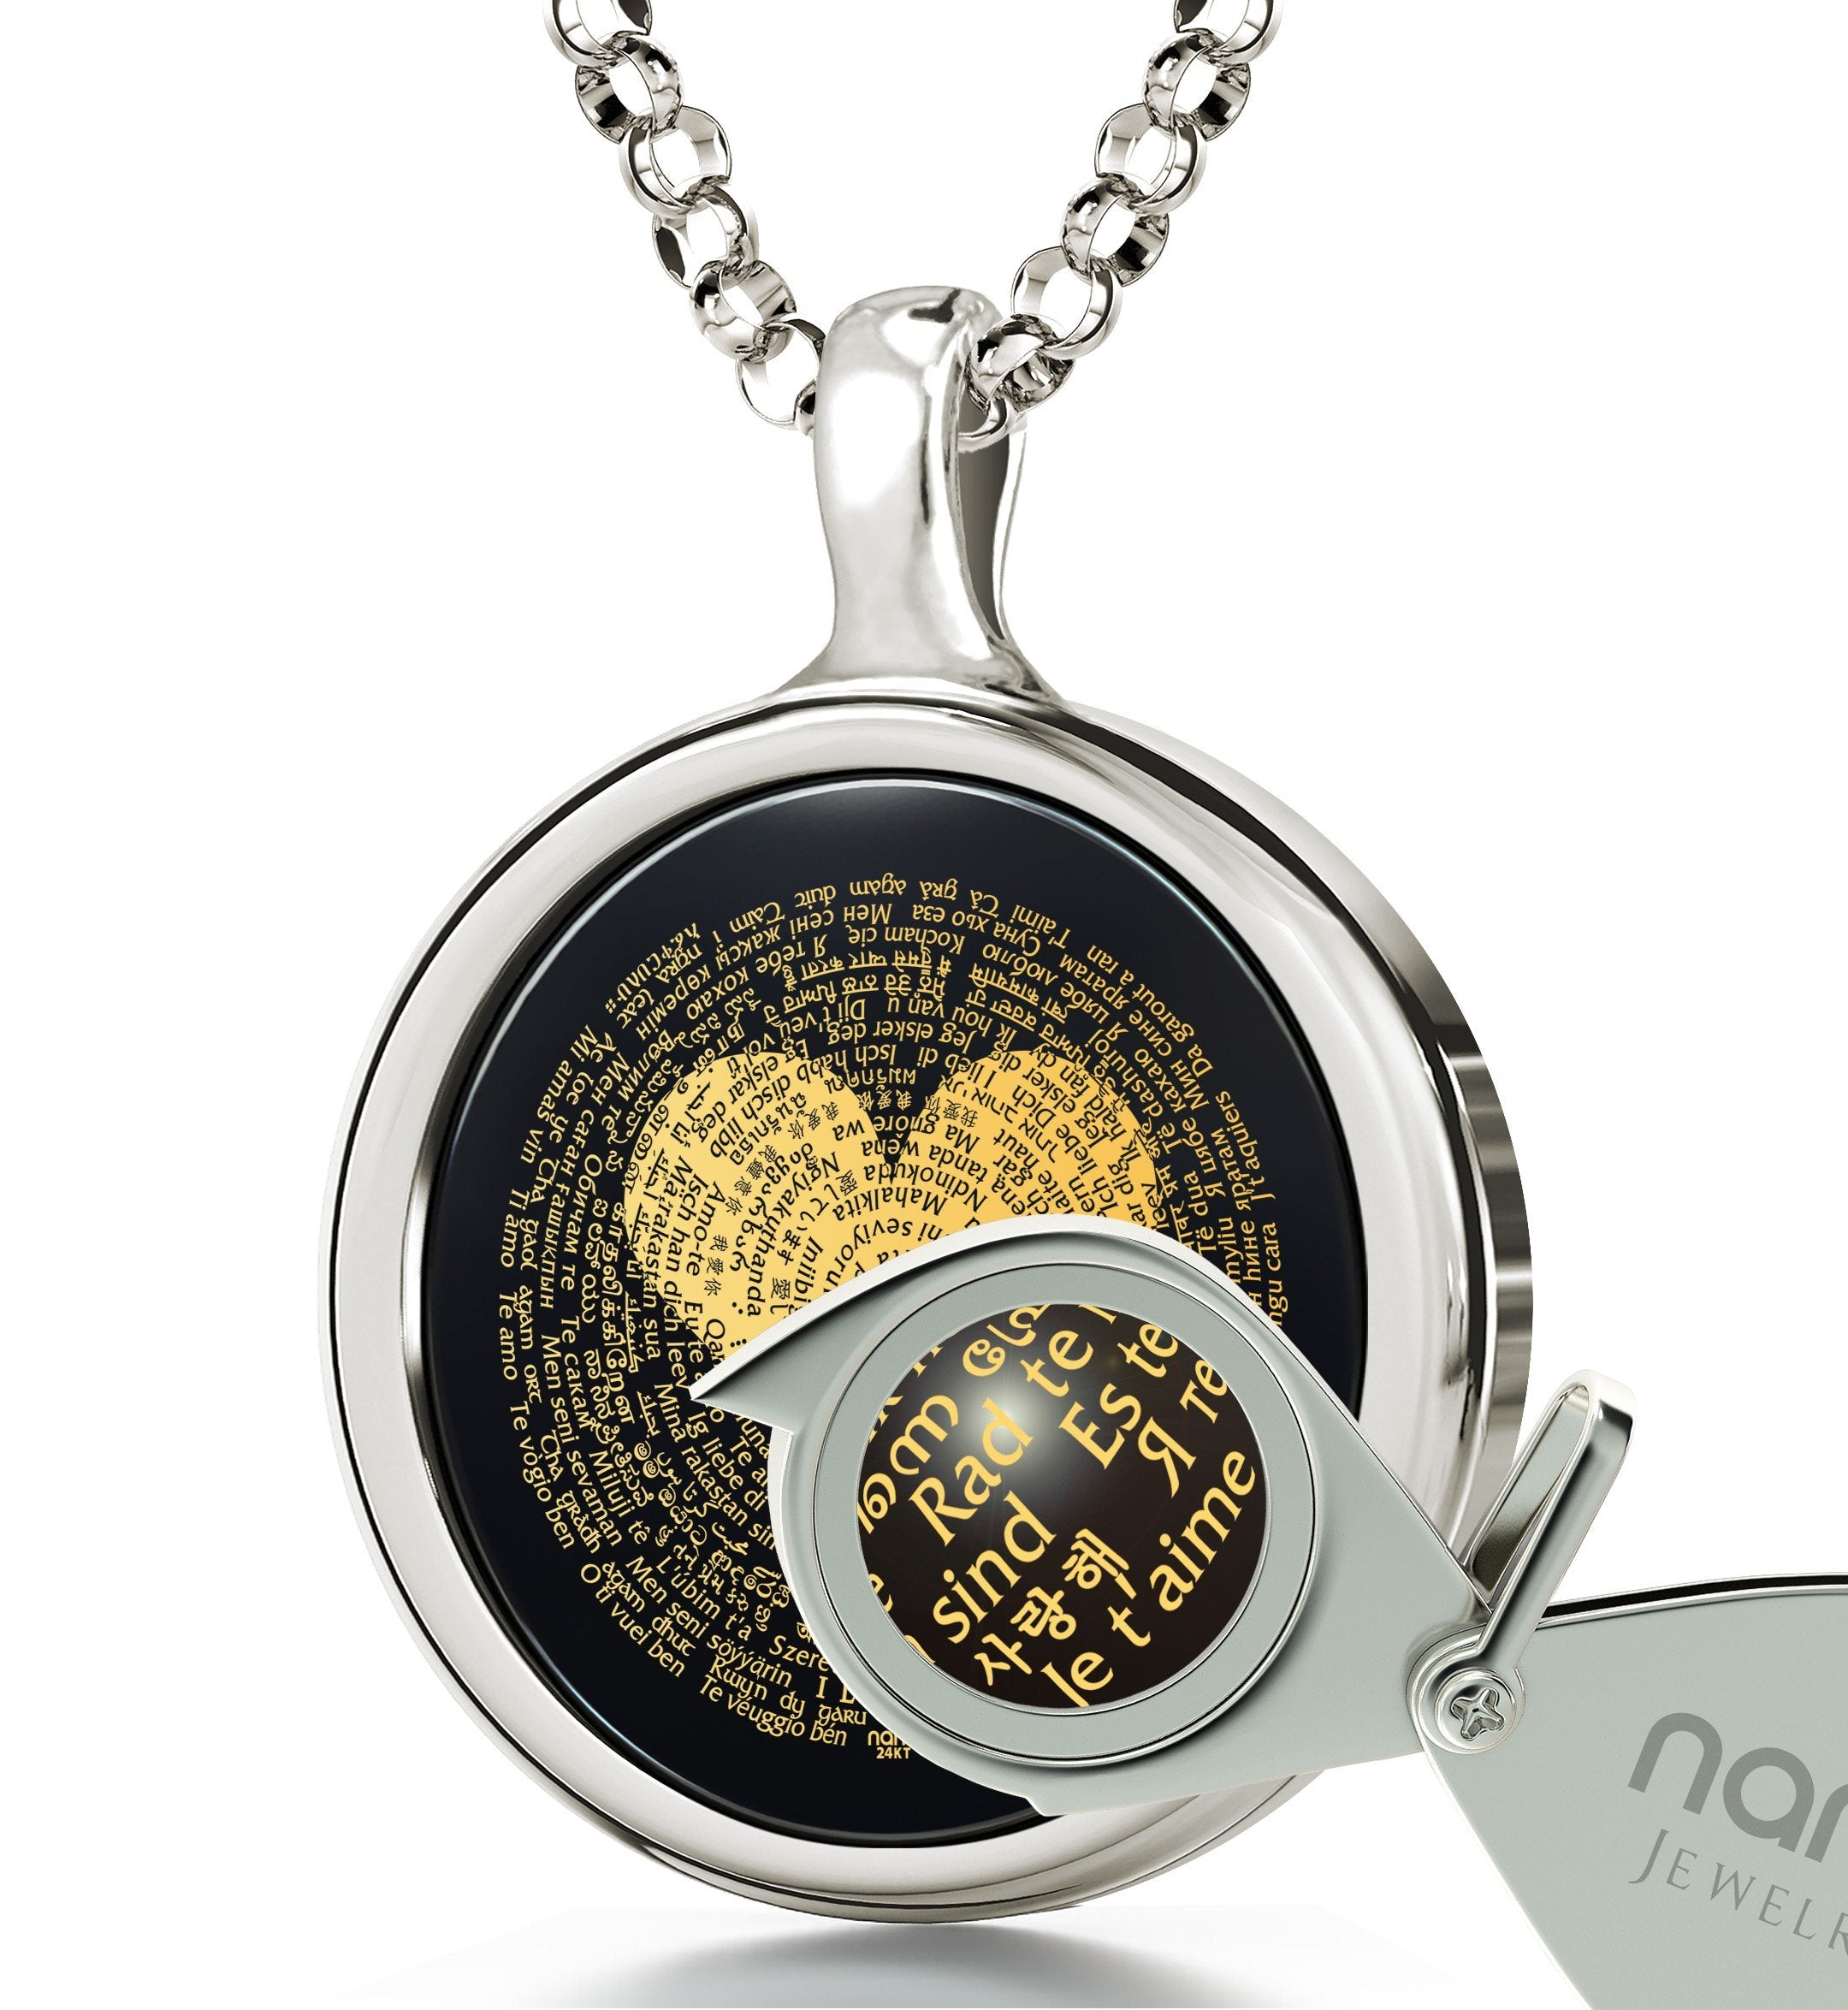 """I Love You"" in French: Valentines Day Ideas for Her, What to Get Girlfriend for Birthday, Nano Jewelry"